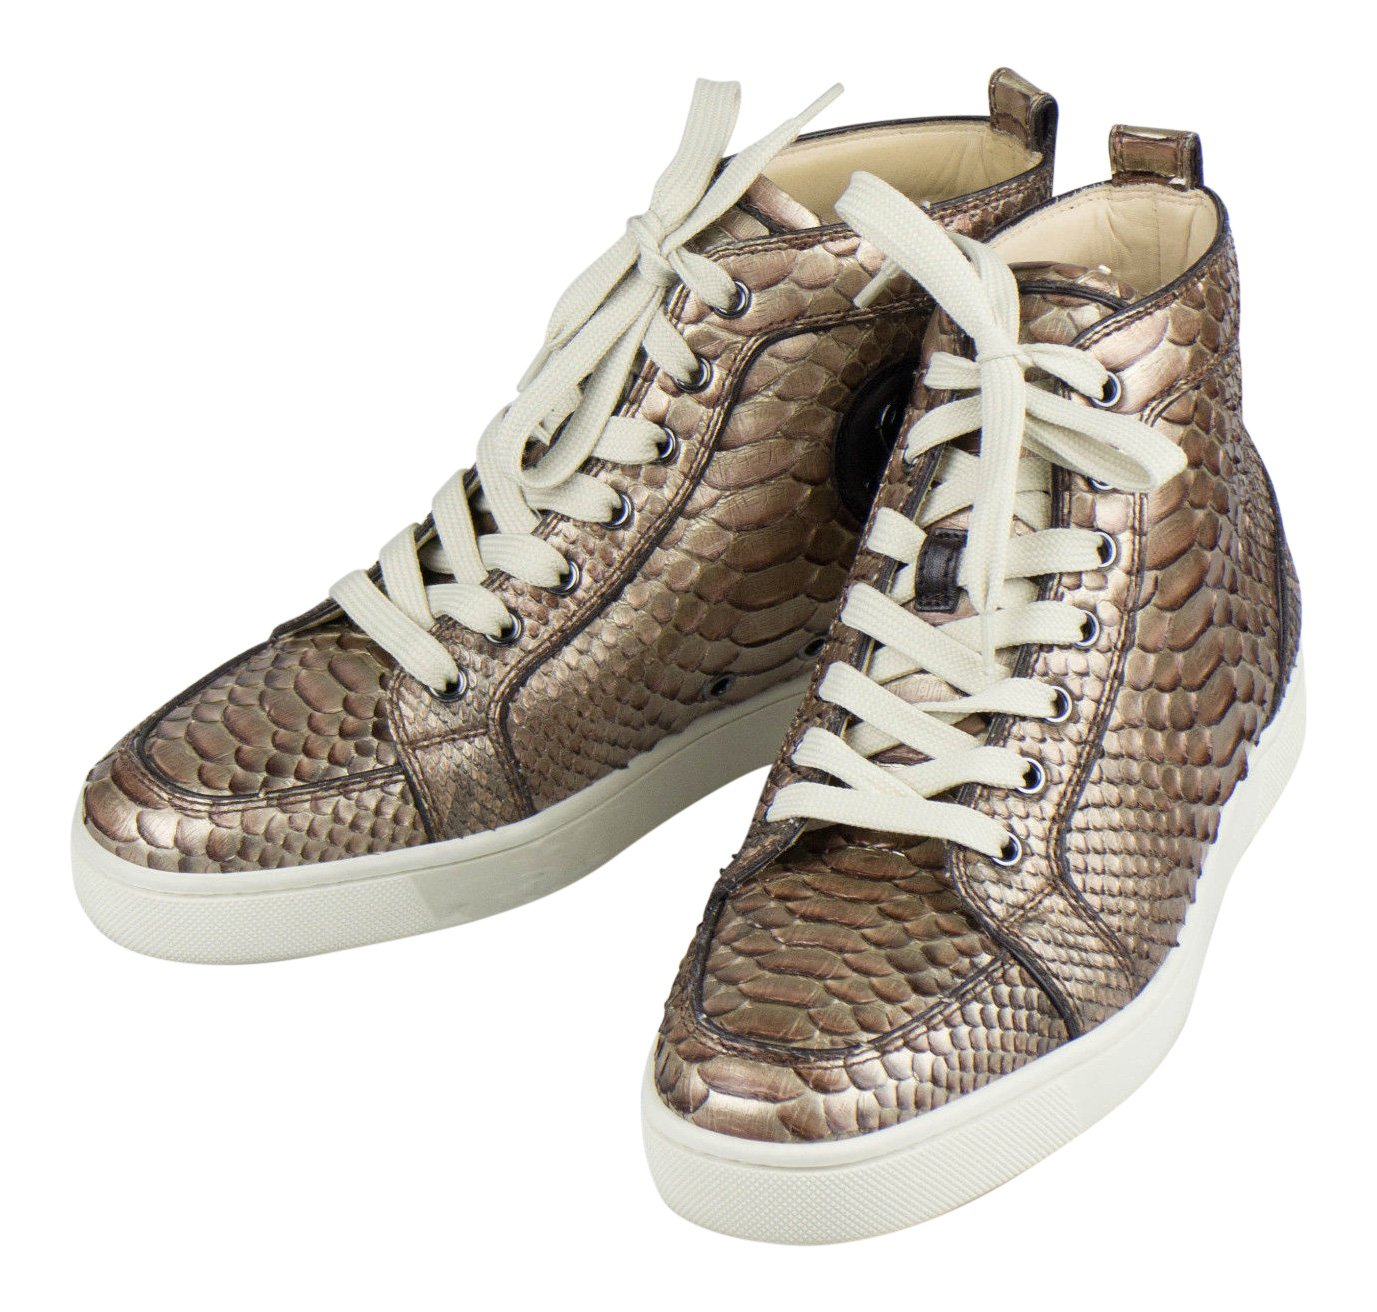 official photos f0f61 8f9d6 Christian Louboutin Brown Python Snake Skin Sneakers Shoes 6 ...